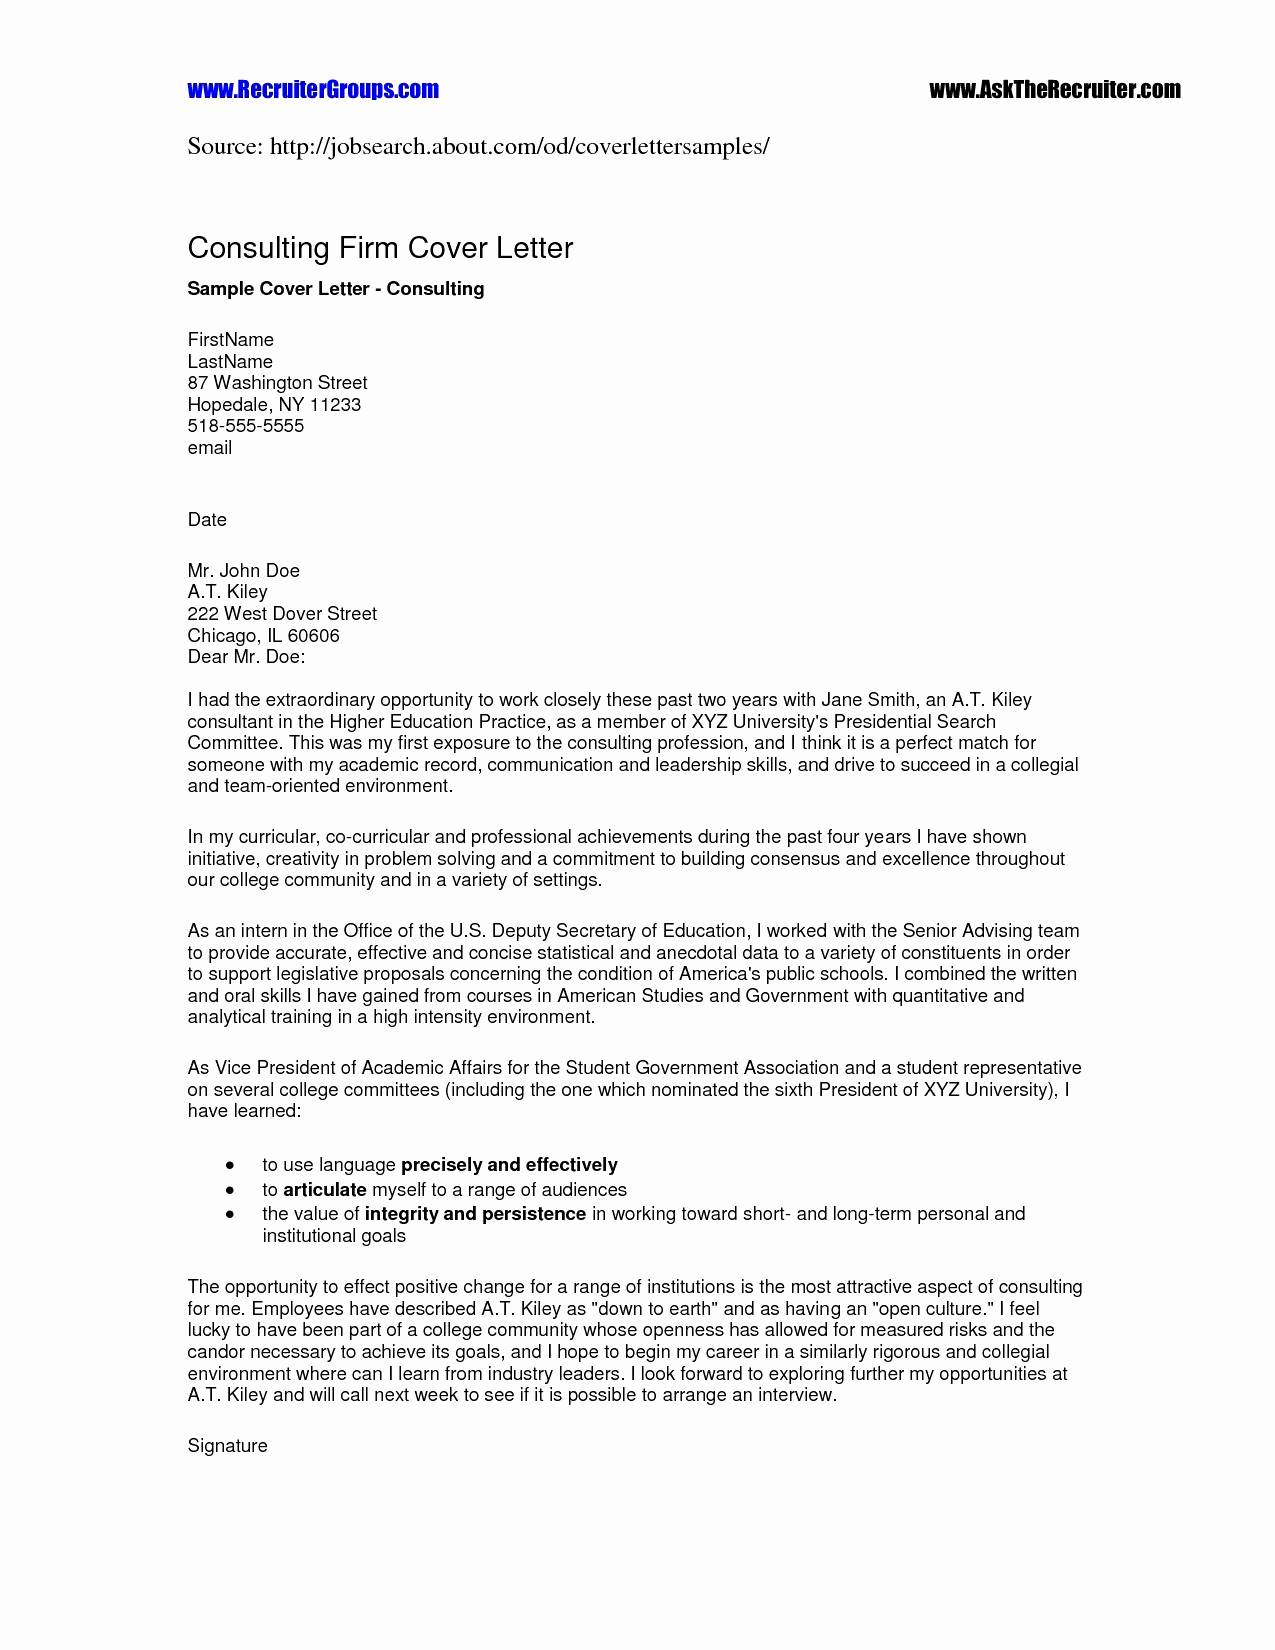 Case Manager Cover Letter Template - Job Enquiry Cover Letter New Case Manager Cover Letter S Hd Resume